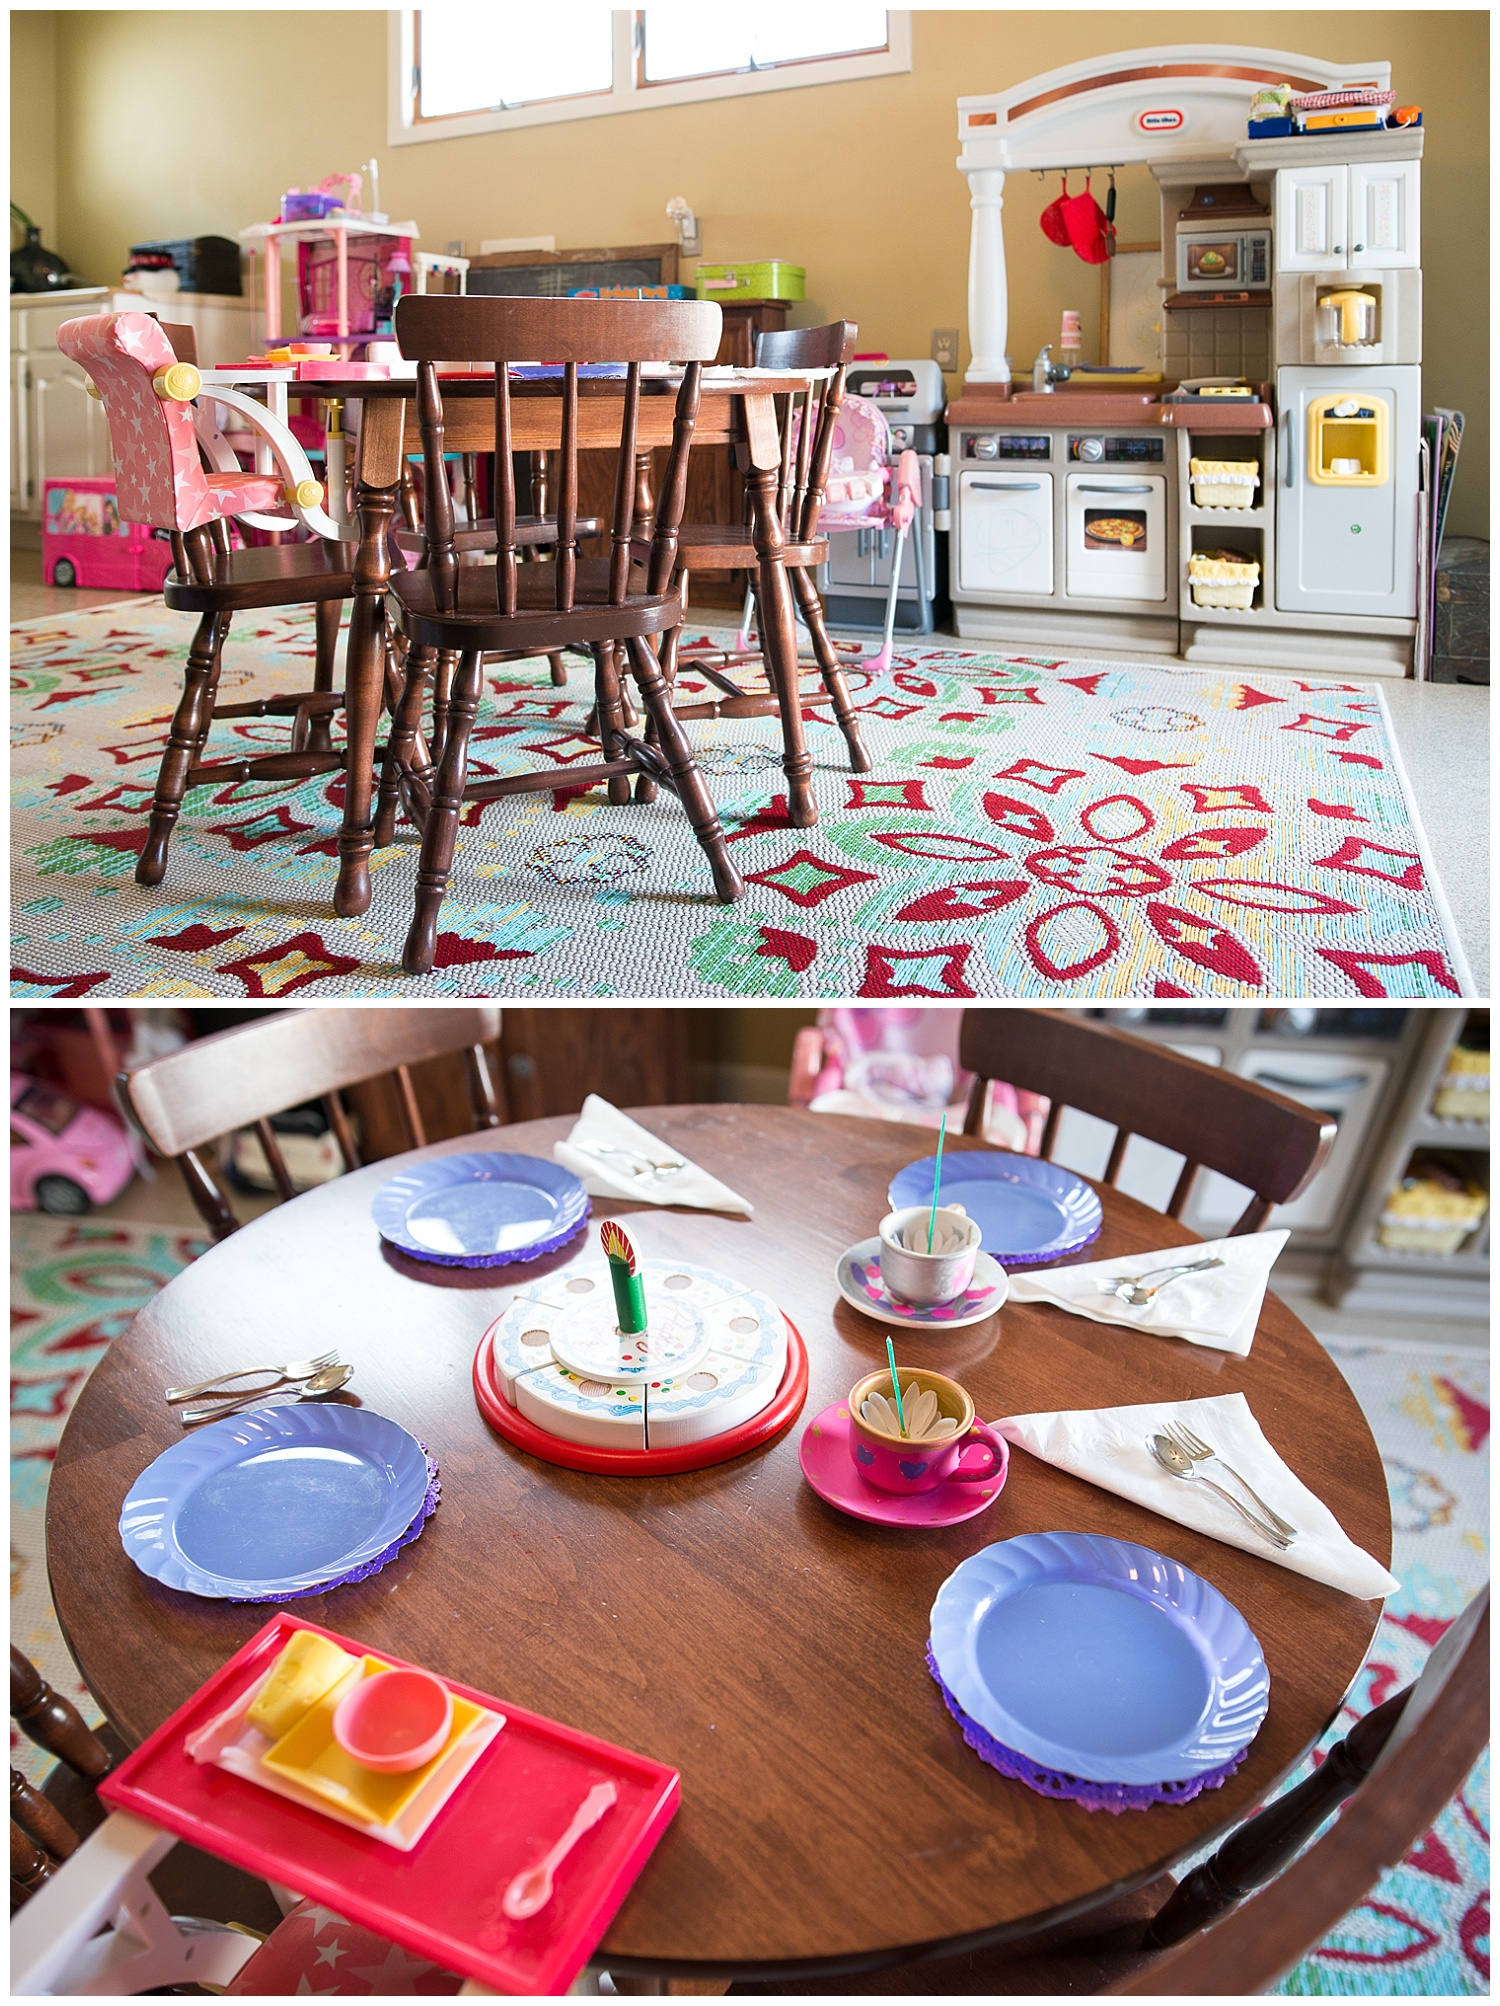 Kids live here. This is the kids' upstairs play area just off the kitchen and it is complete with all the things needed for a tea party. A little table and chairs is exactly what every playroom needs.